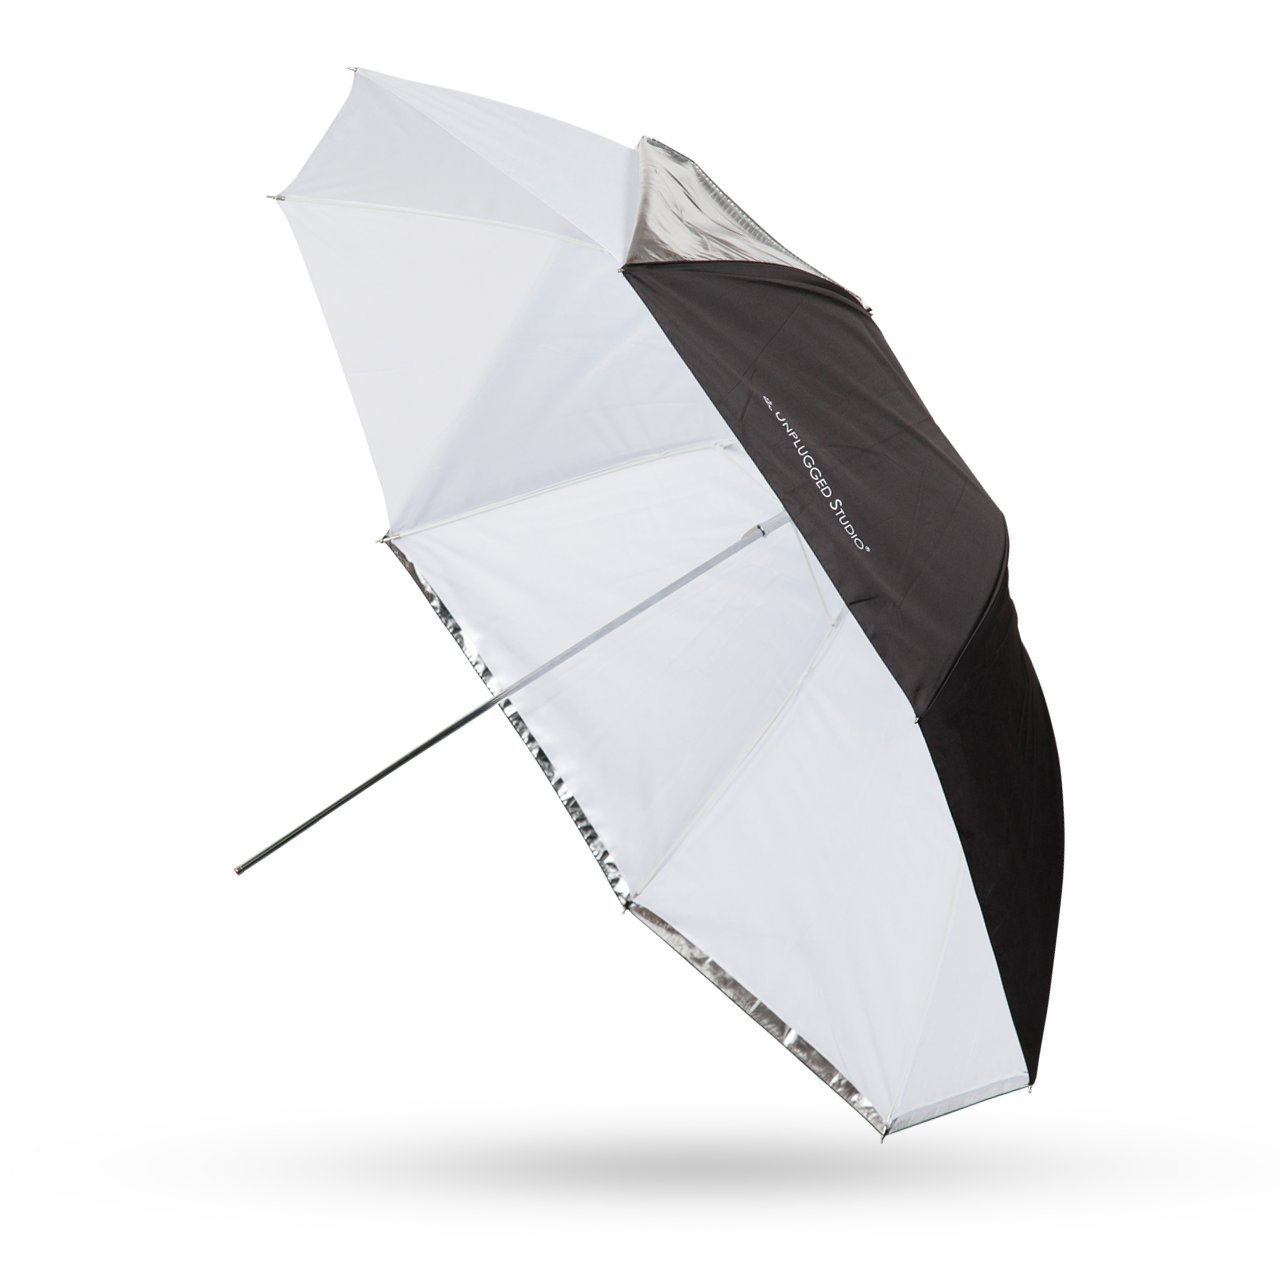 UNPLUGGED STUDIO 43inch White/Shoot Through Convertible Umbrella (Fiberglass Rib)